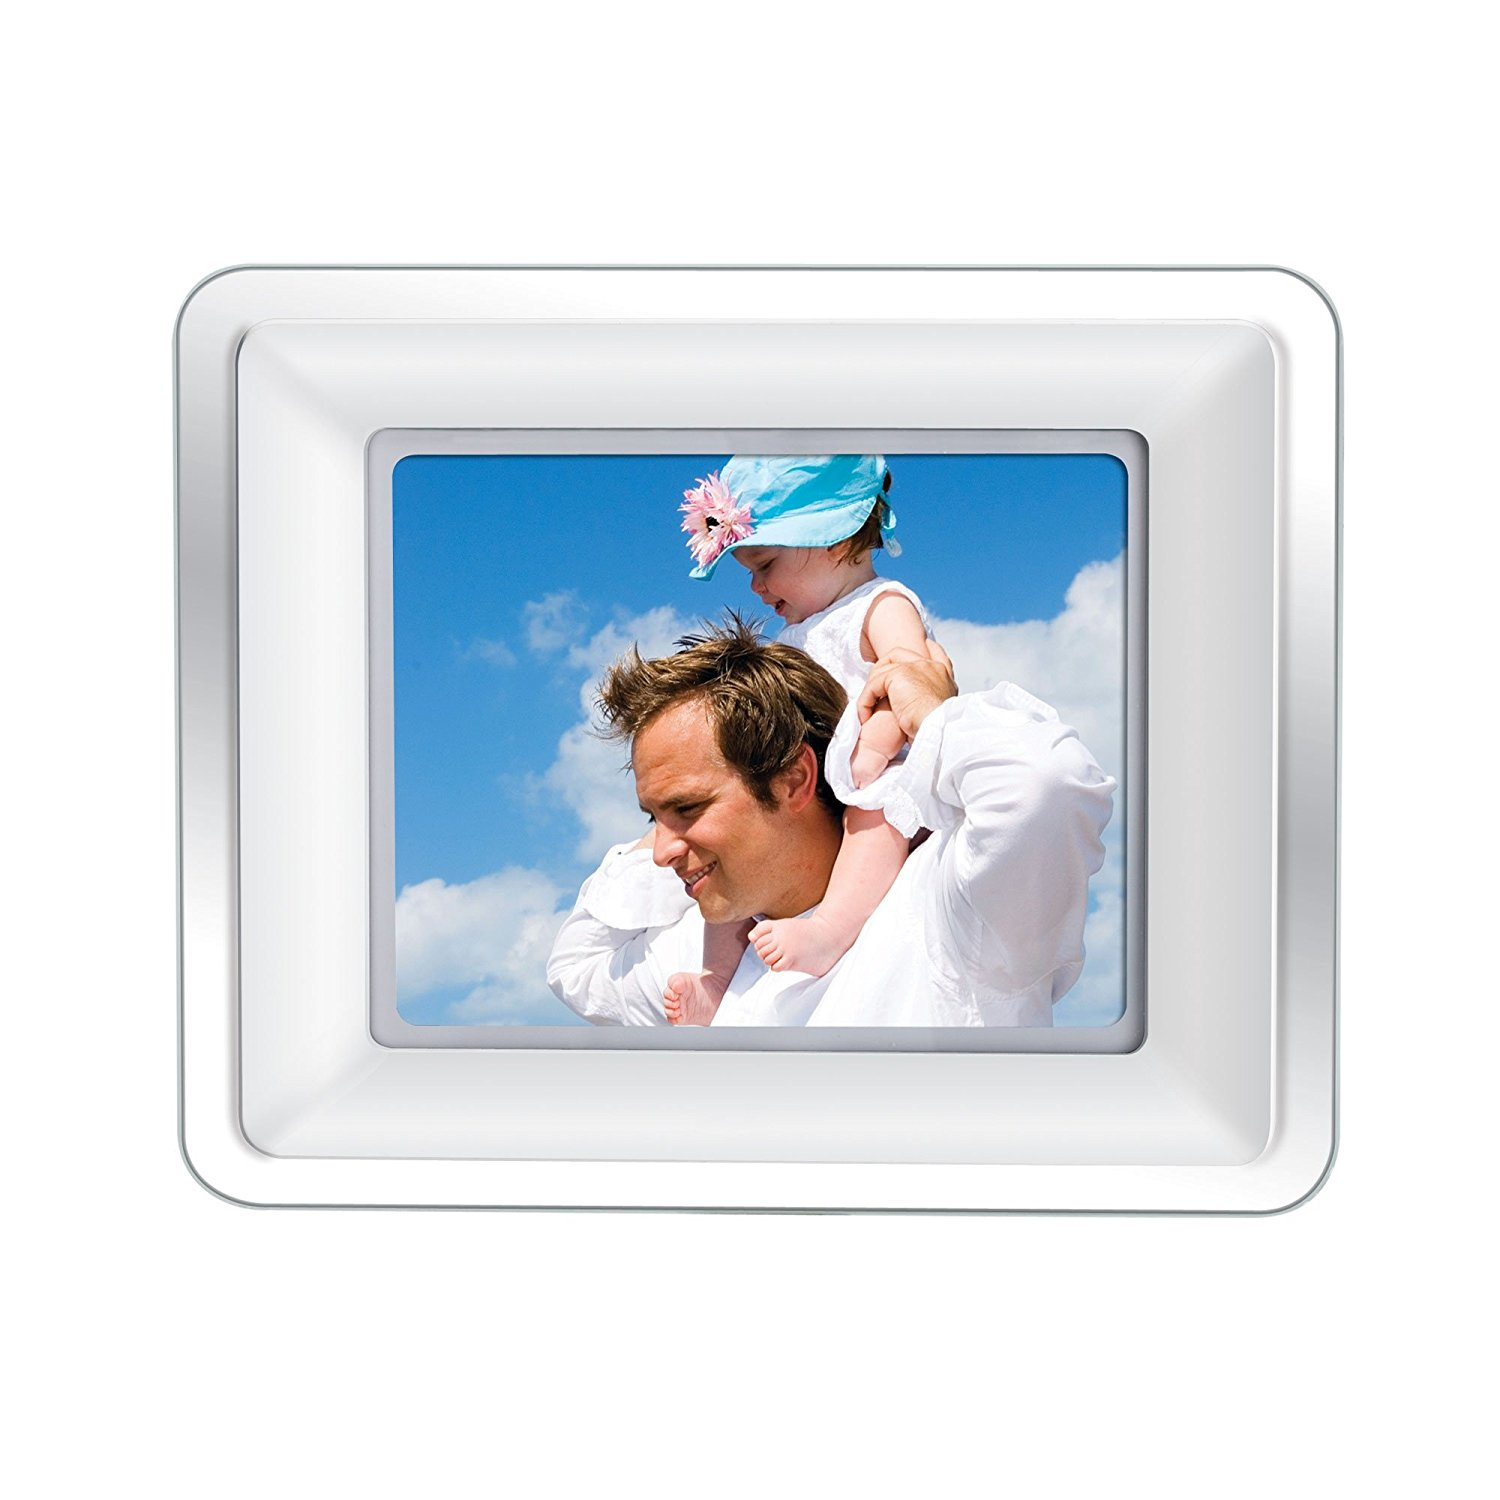 Cheap Coby 8 Digital Picture Frame, find Coby 8 Digital Picture ...